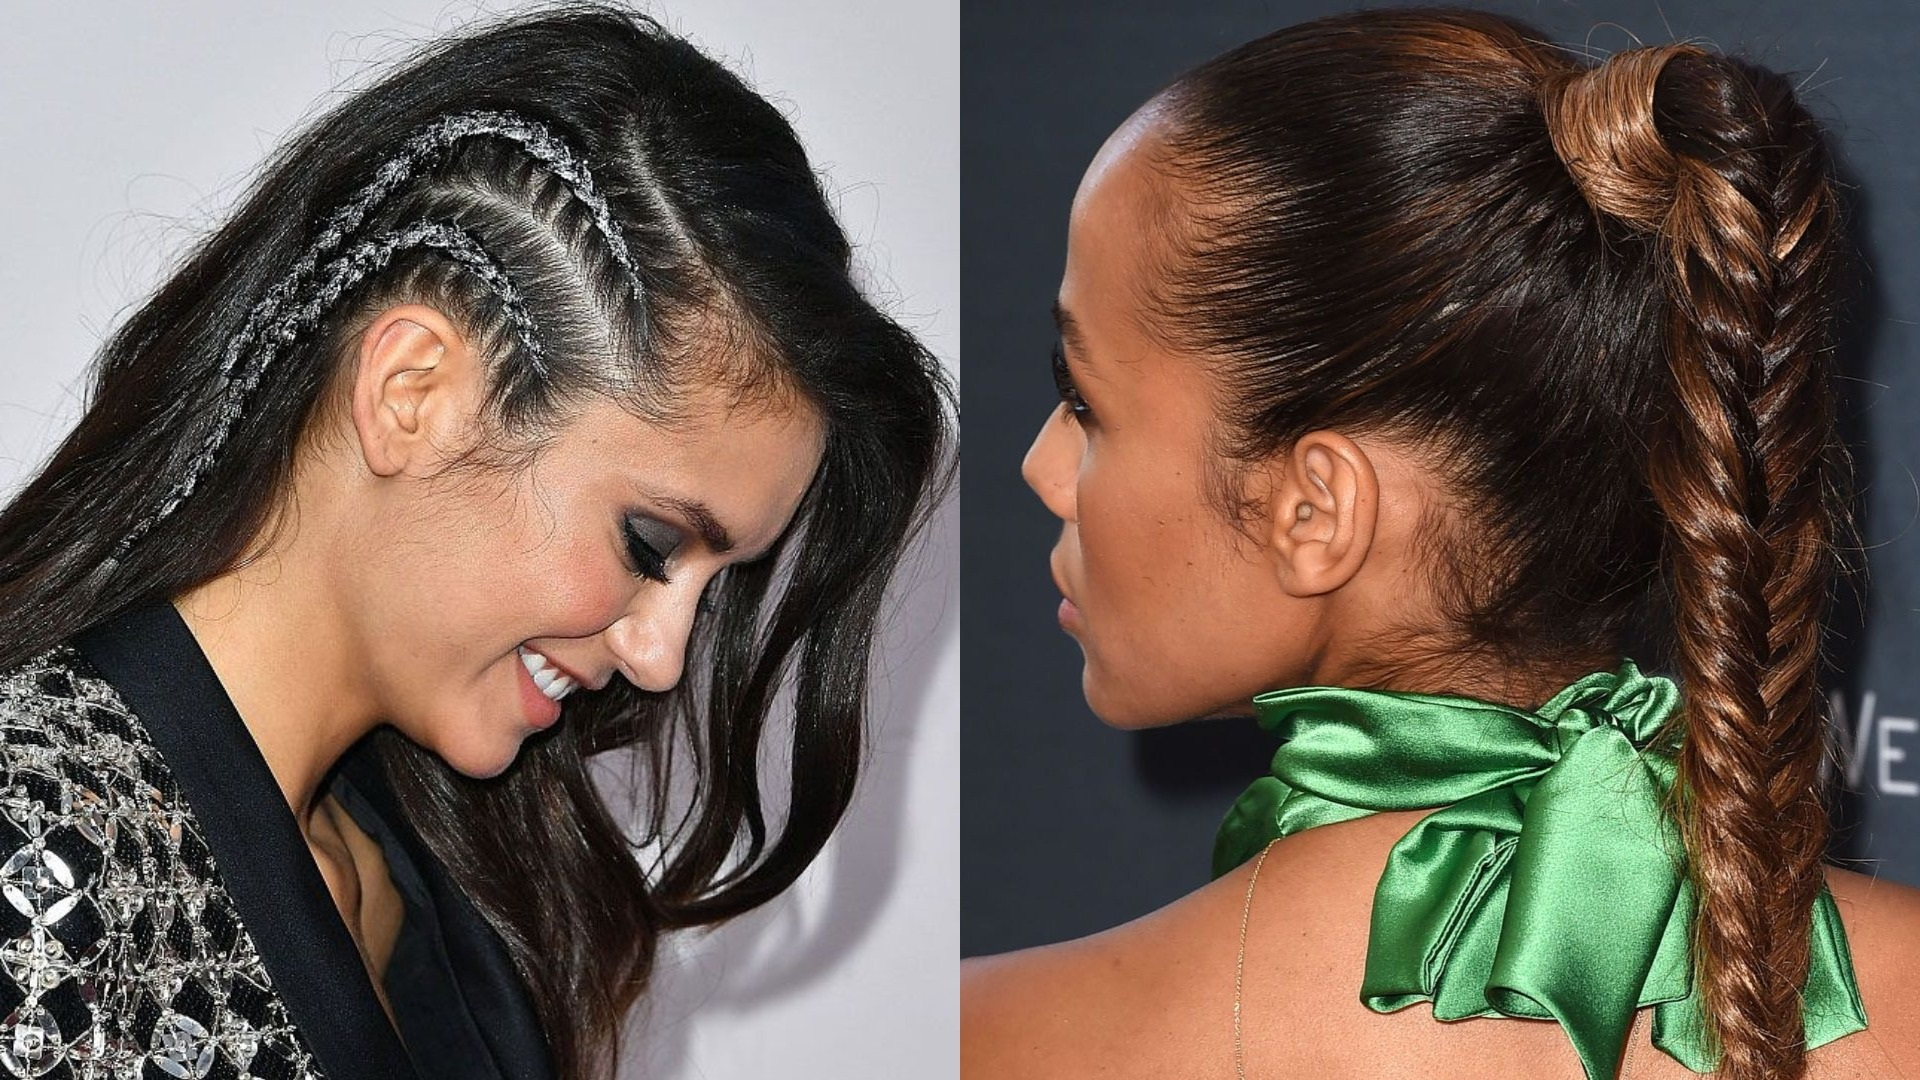 Braids-Hairstyles-for-an-Ultimate-Princess-Look Braids Hairstyles for an Ultimate Princess Look